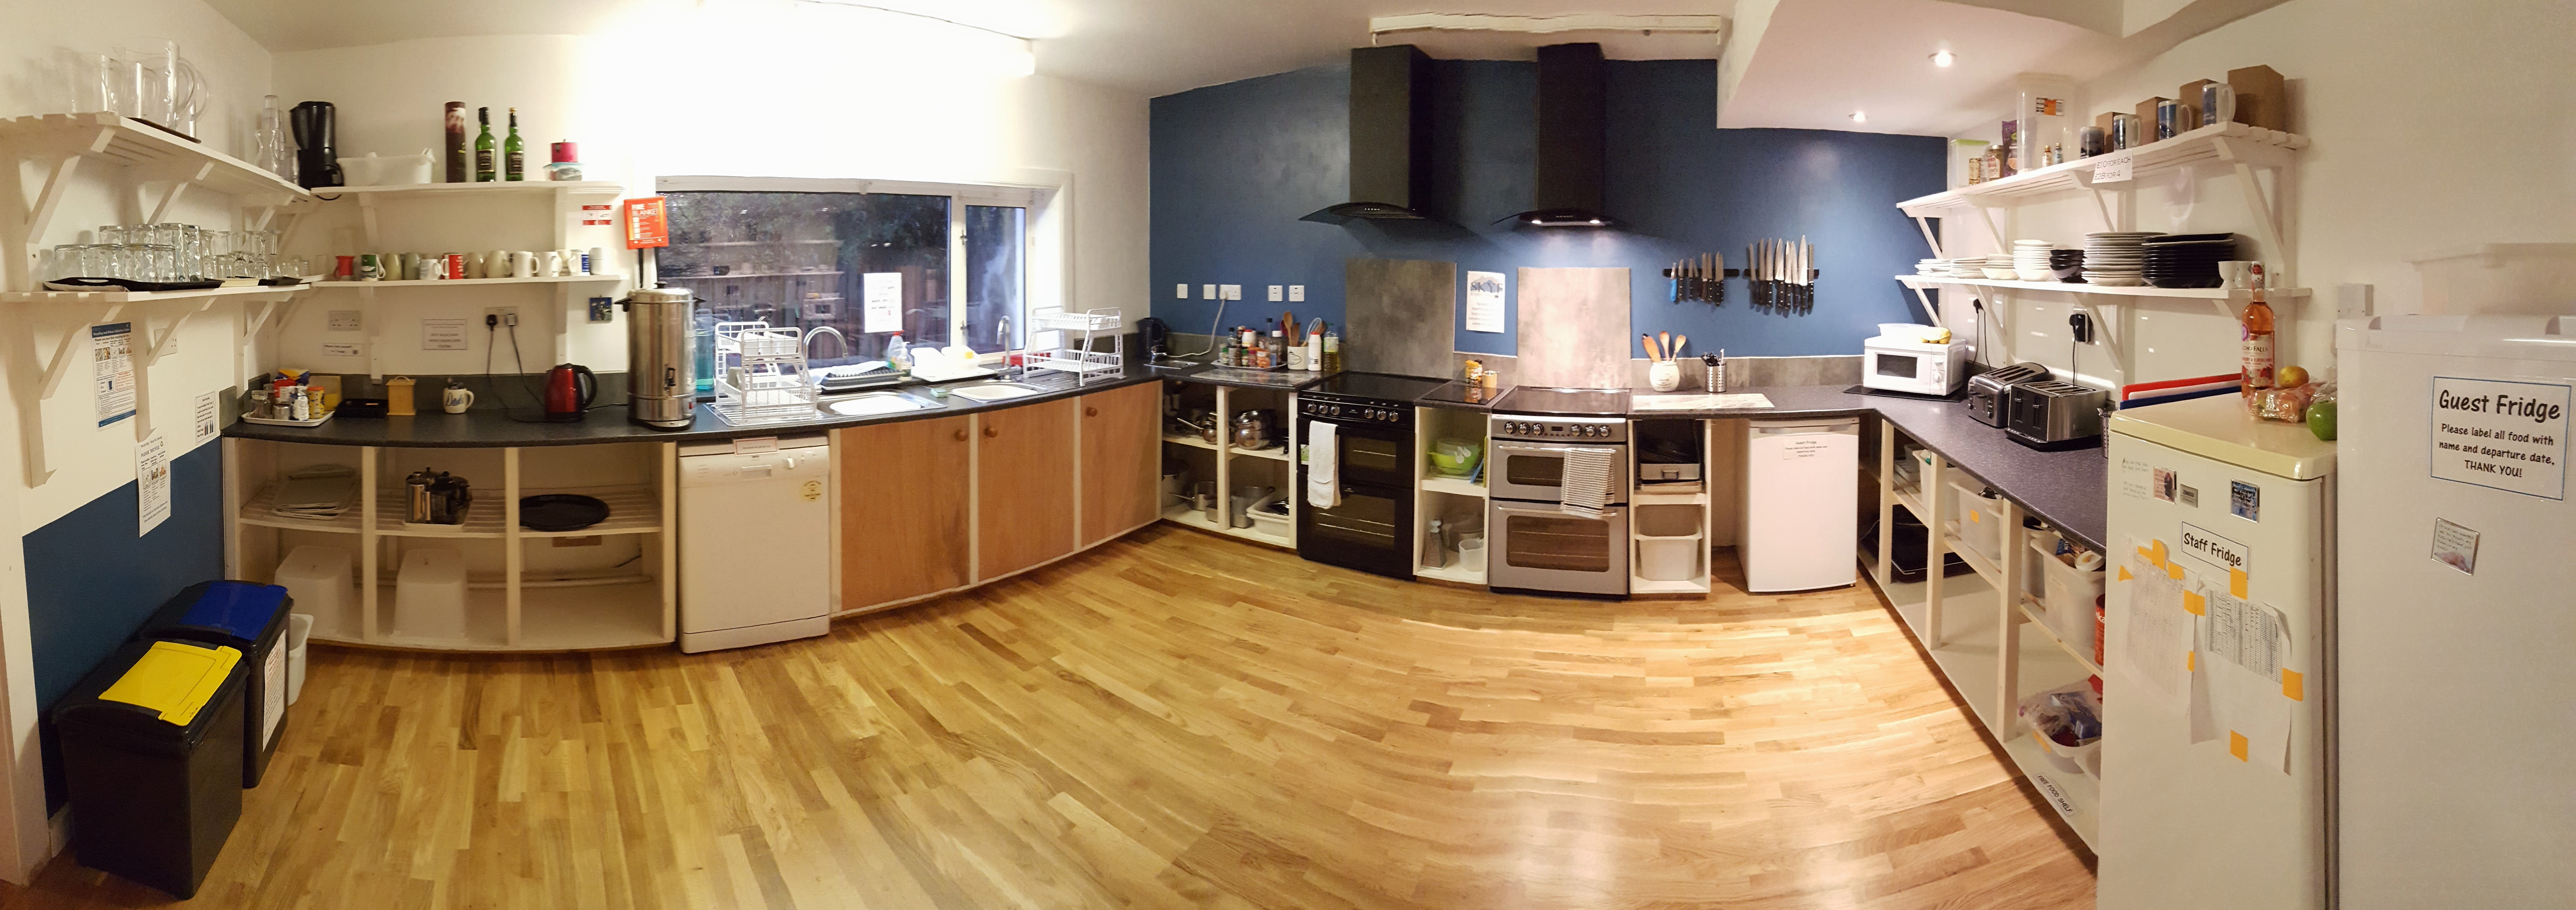 kitchen facilities We have a brand new kitchen facility which is available for your function which has two ovens and hobs , a double sink with drainers kitchen facilities parking.